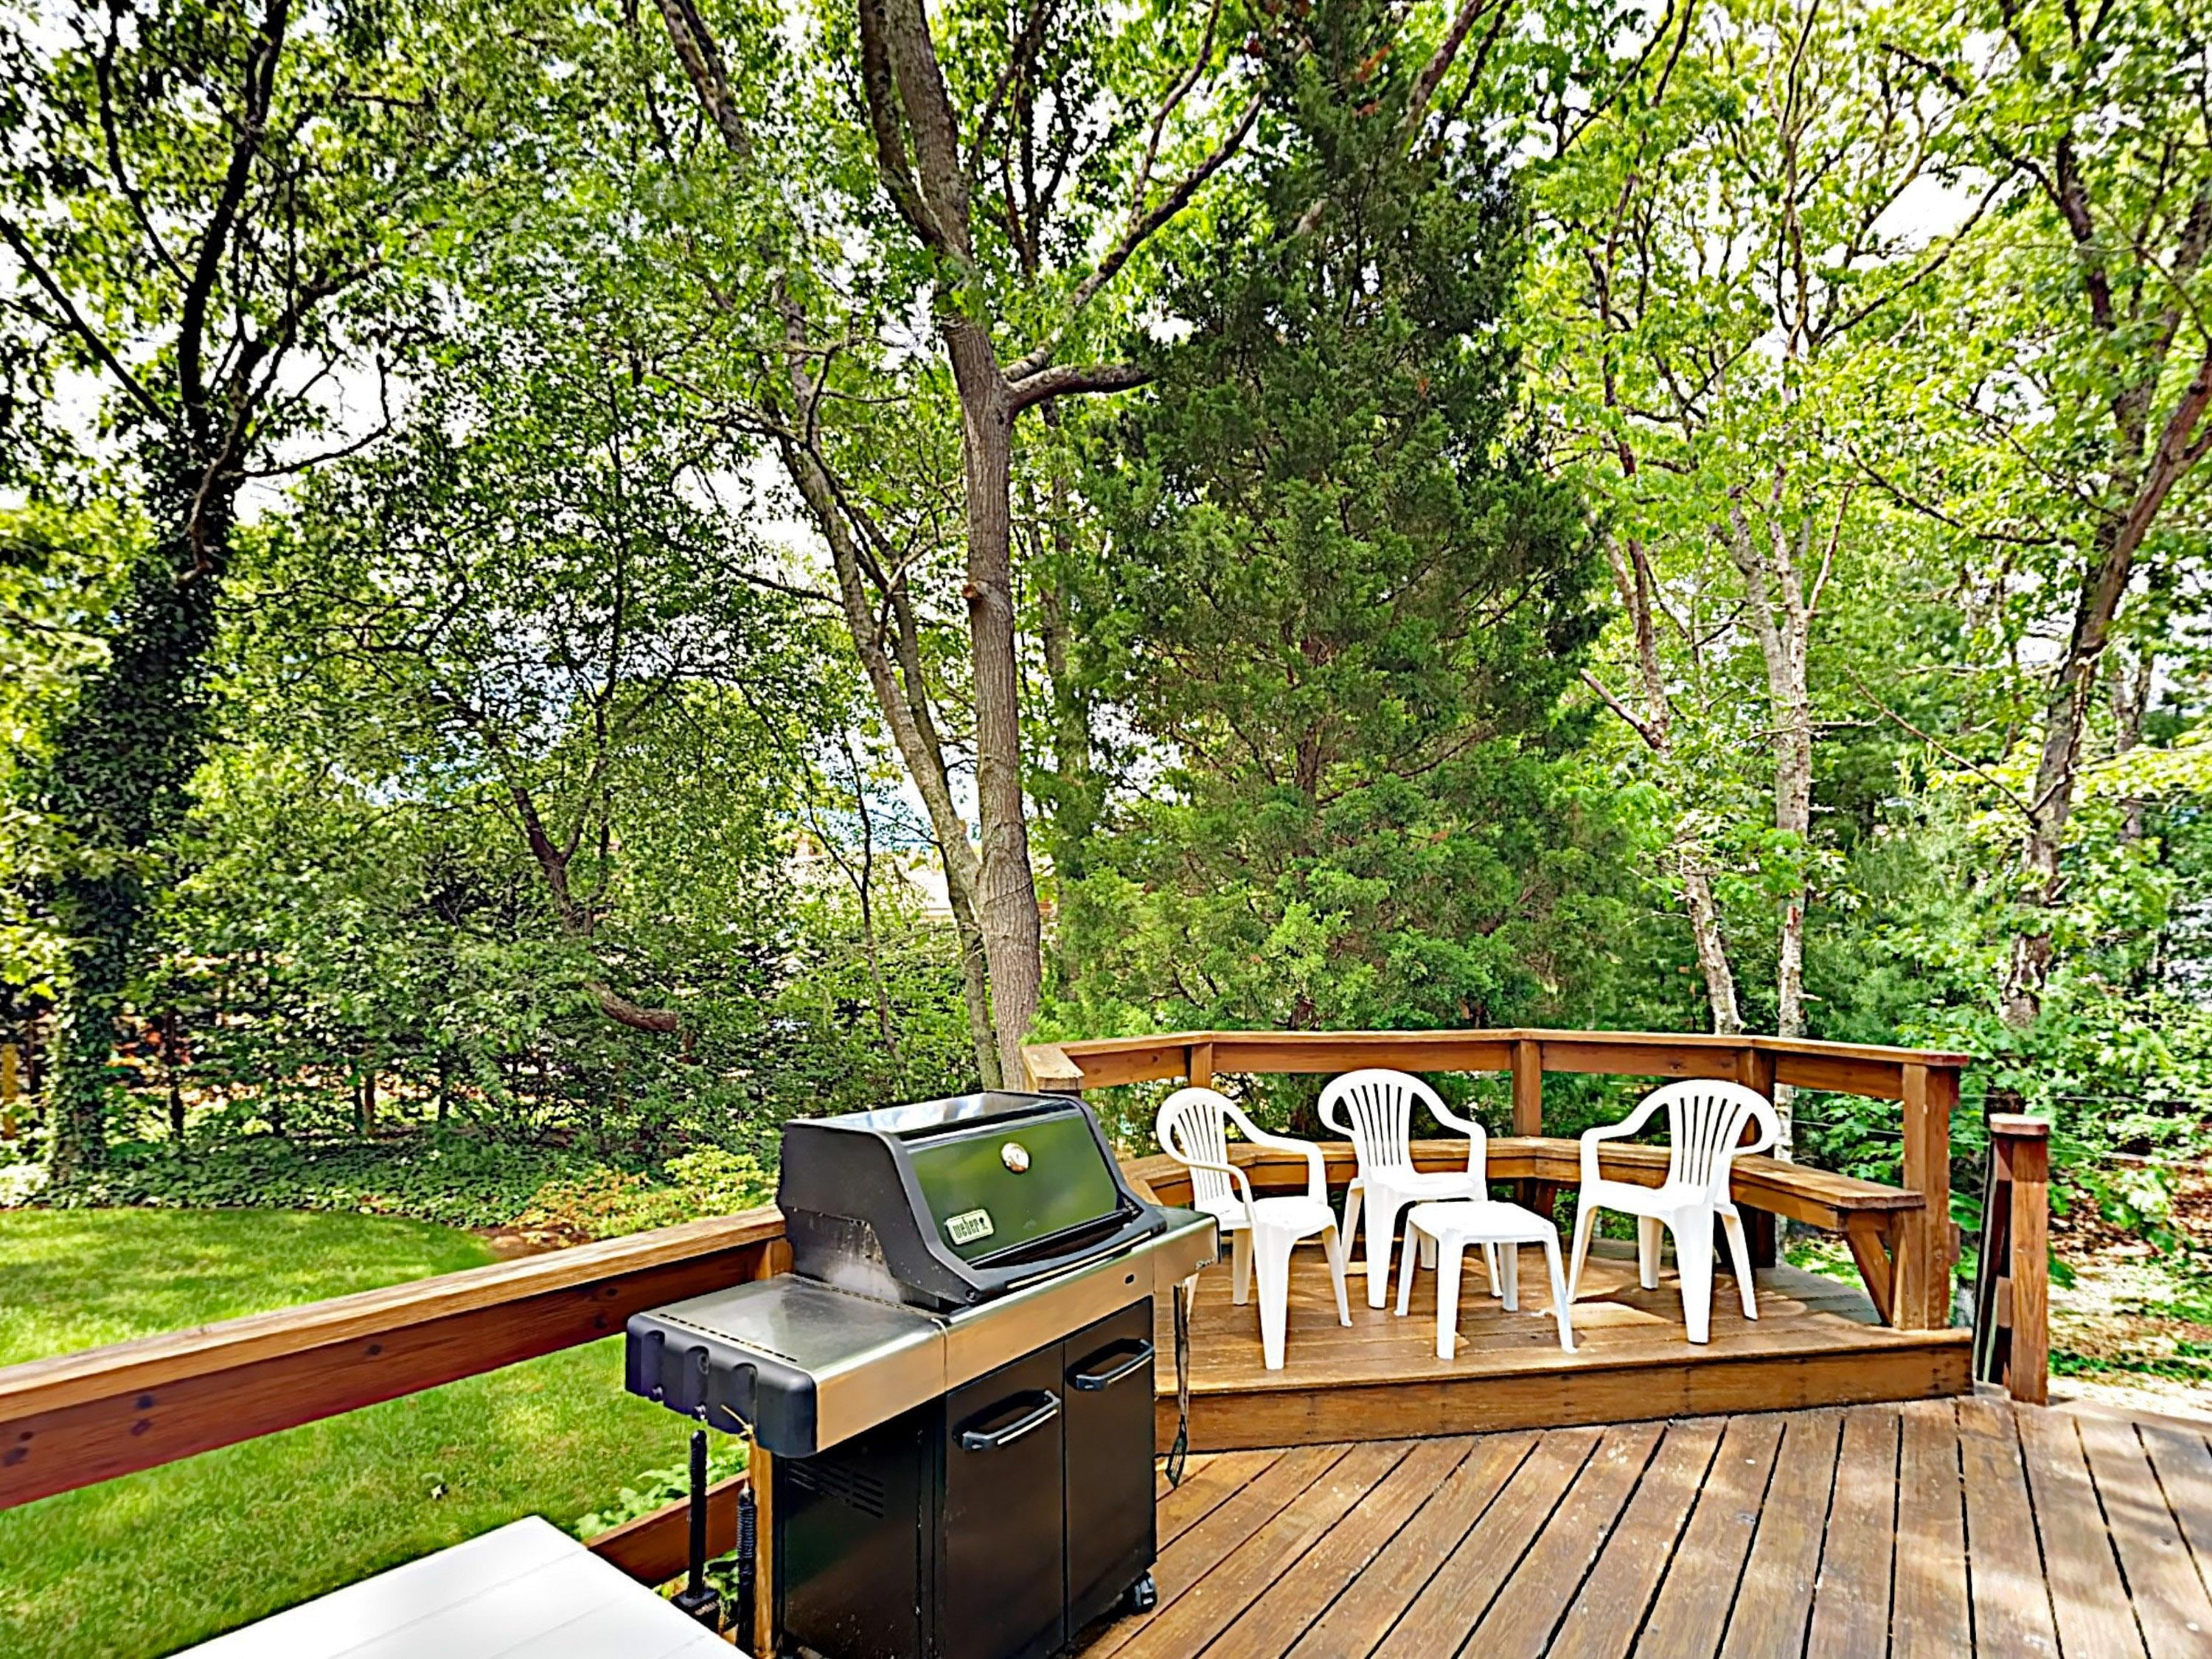 Out on the deck you'll find a picnic table, gas grill, and 8 chairs -- perfect for alfresco dining.